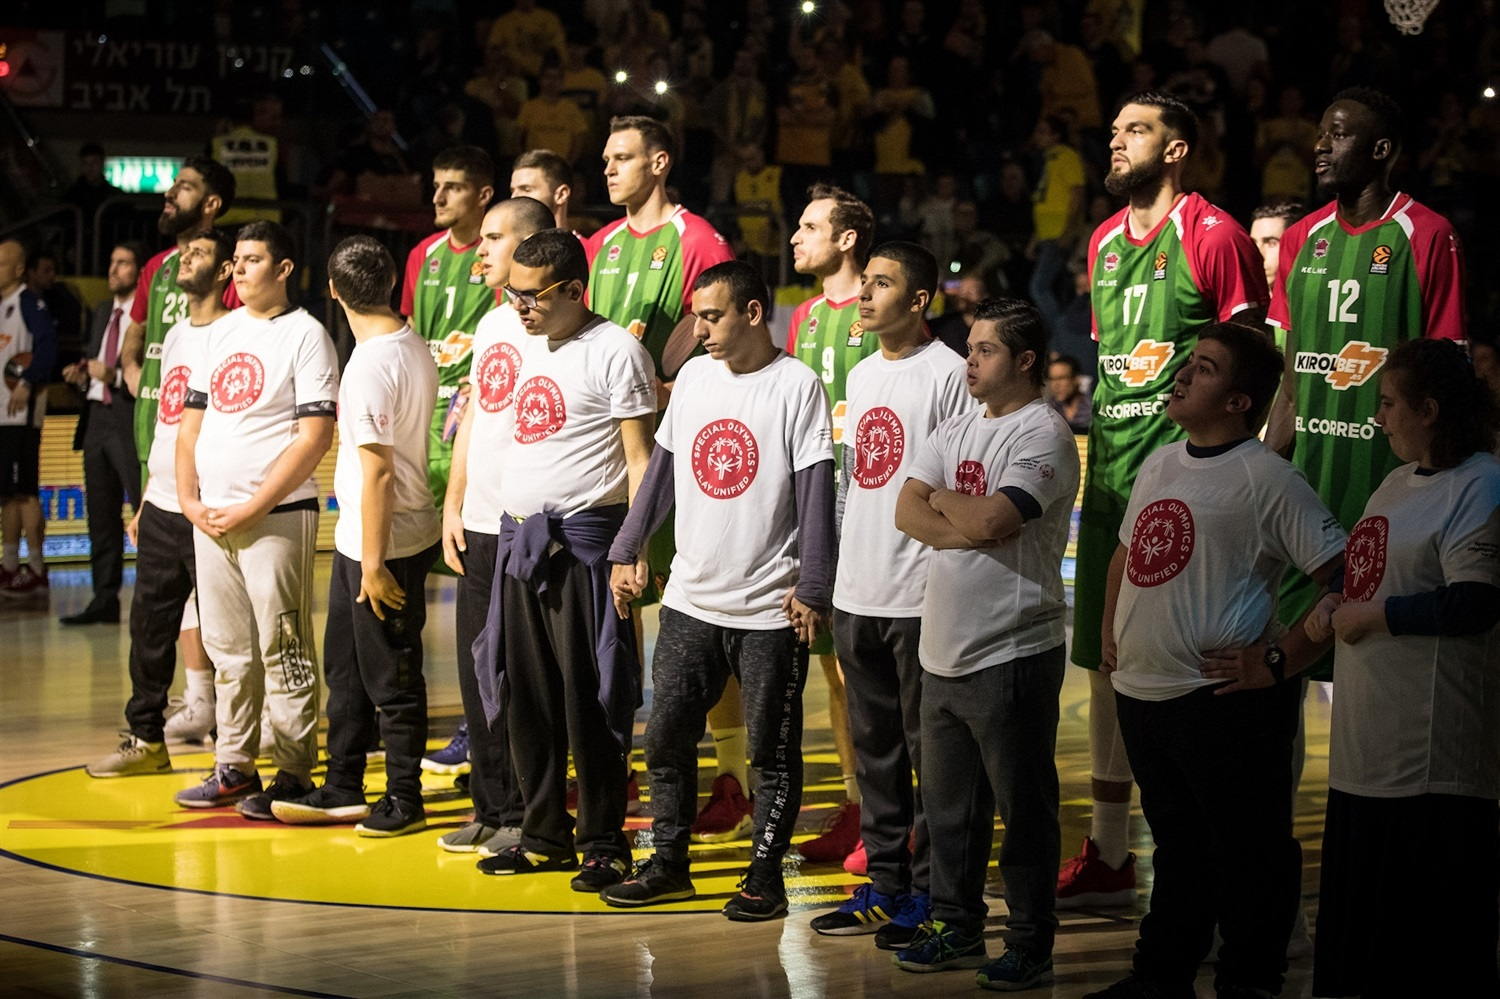 One Team Games - Maccabi FOX Tel Aviv - EB18